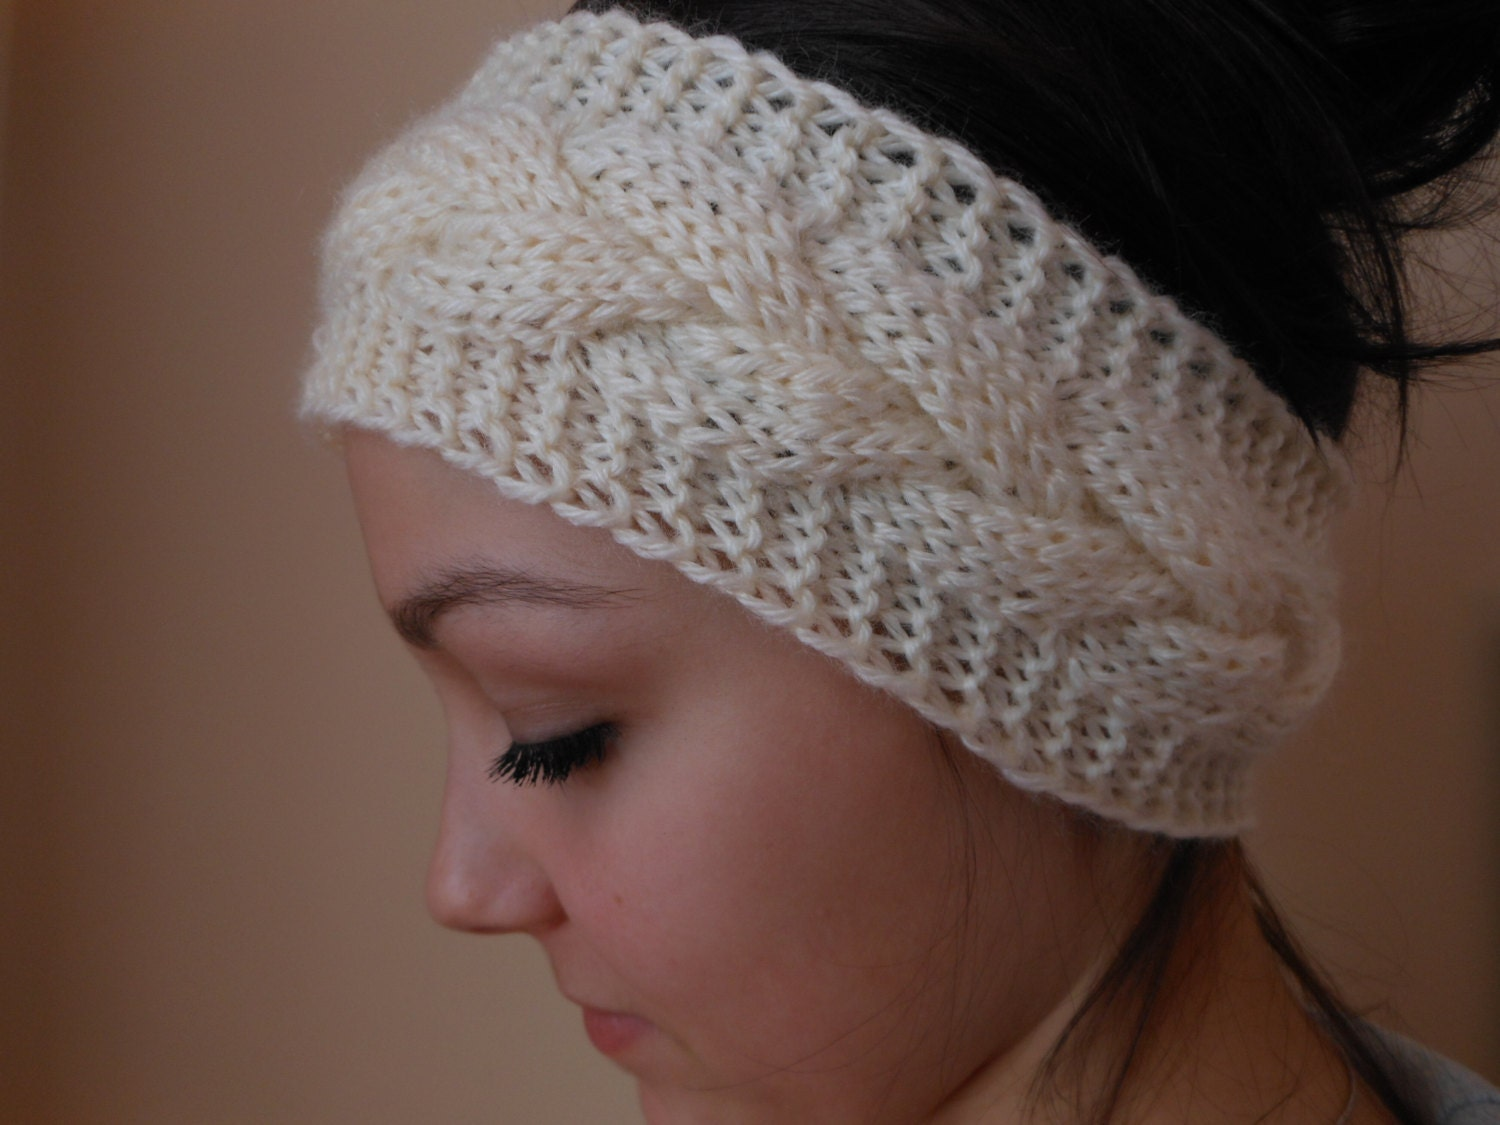 Cable Knit Ear Warmer Pattern : Knit Cable Headband Ear Warmer Head Warmer Cream